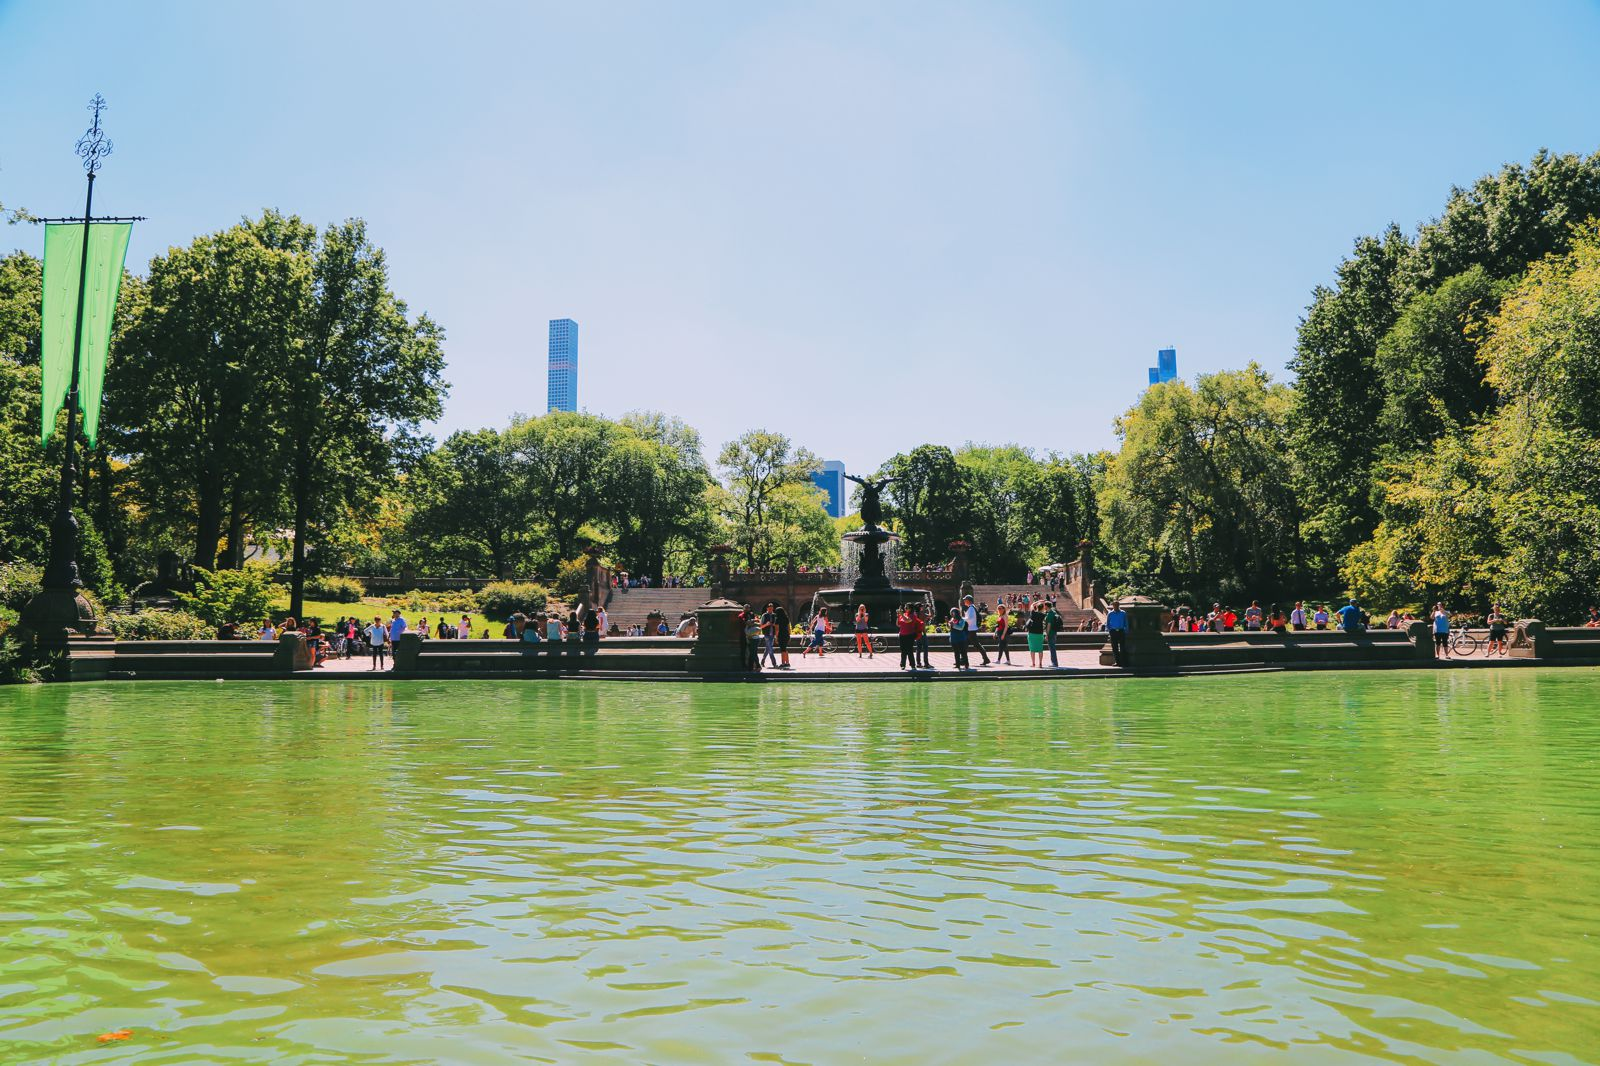 Boating at the Loeb Boathouse in Central Park, New York City (11)